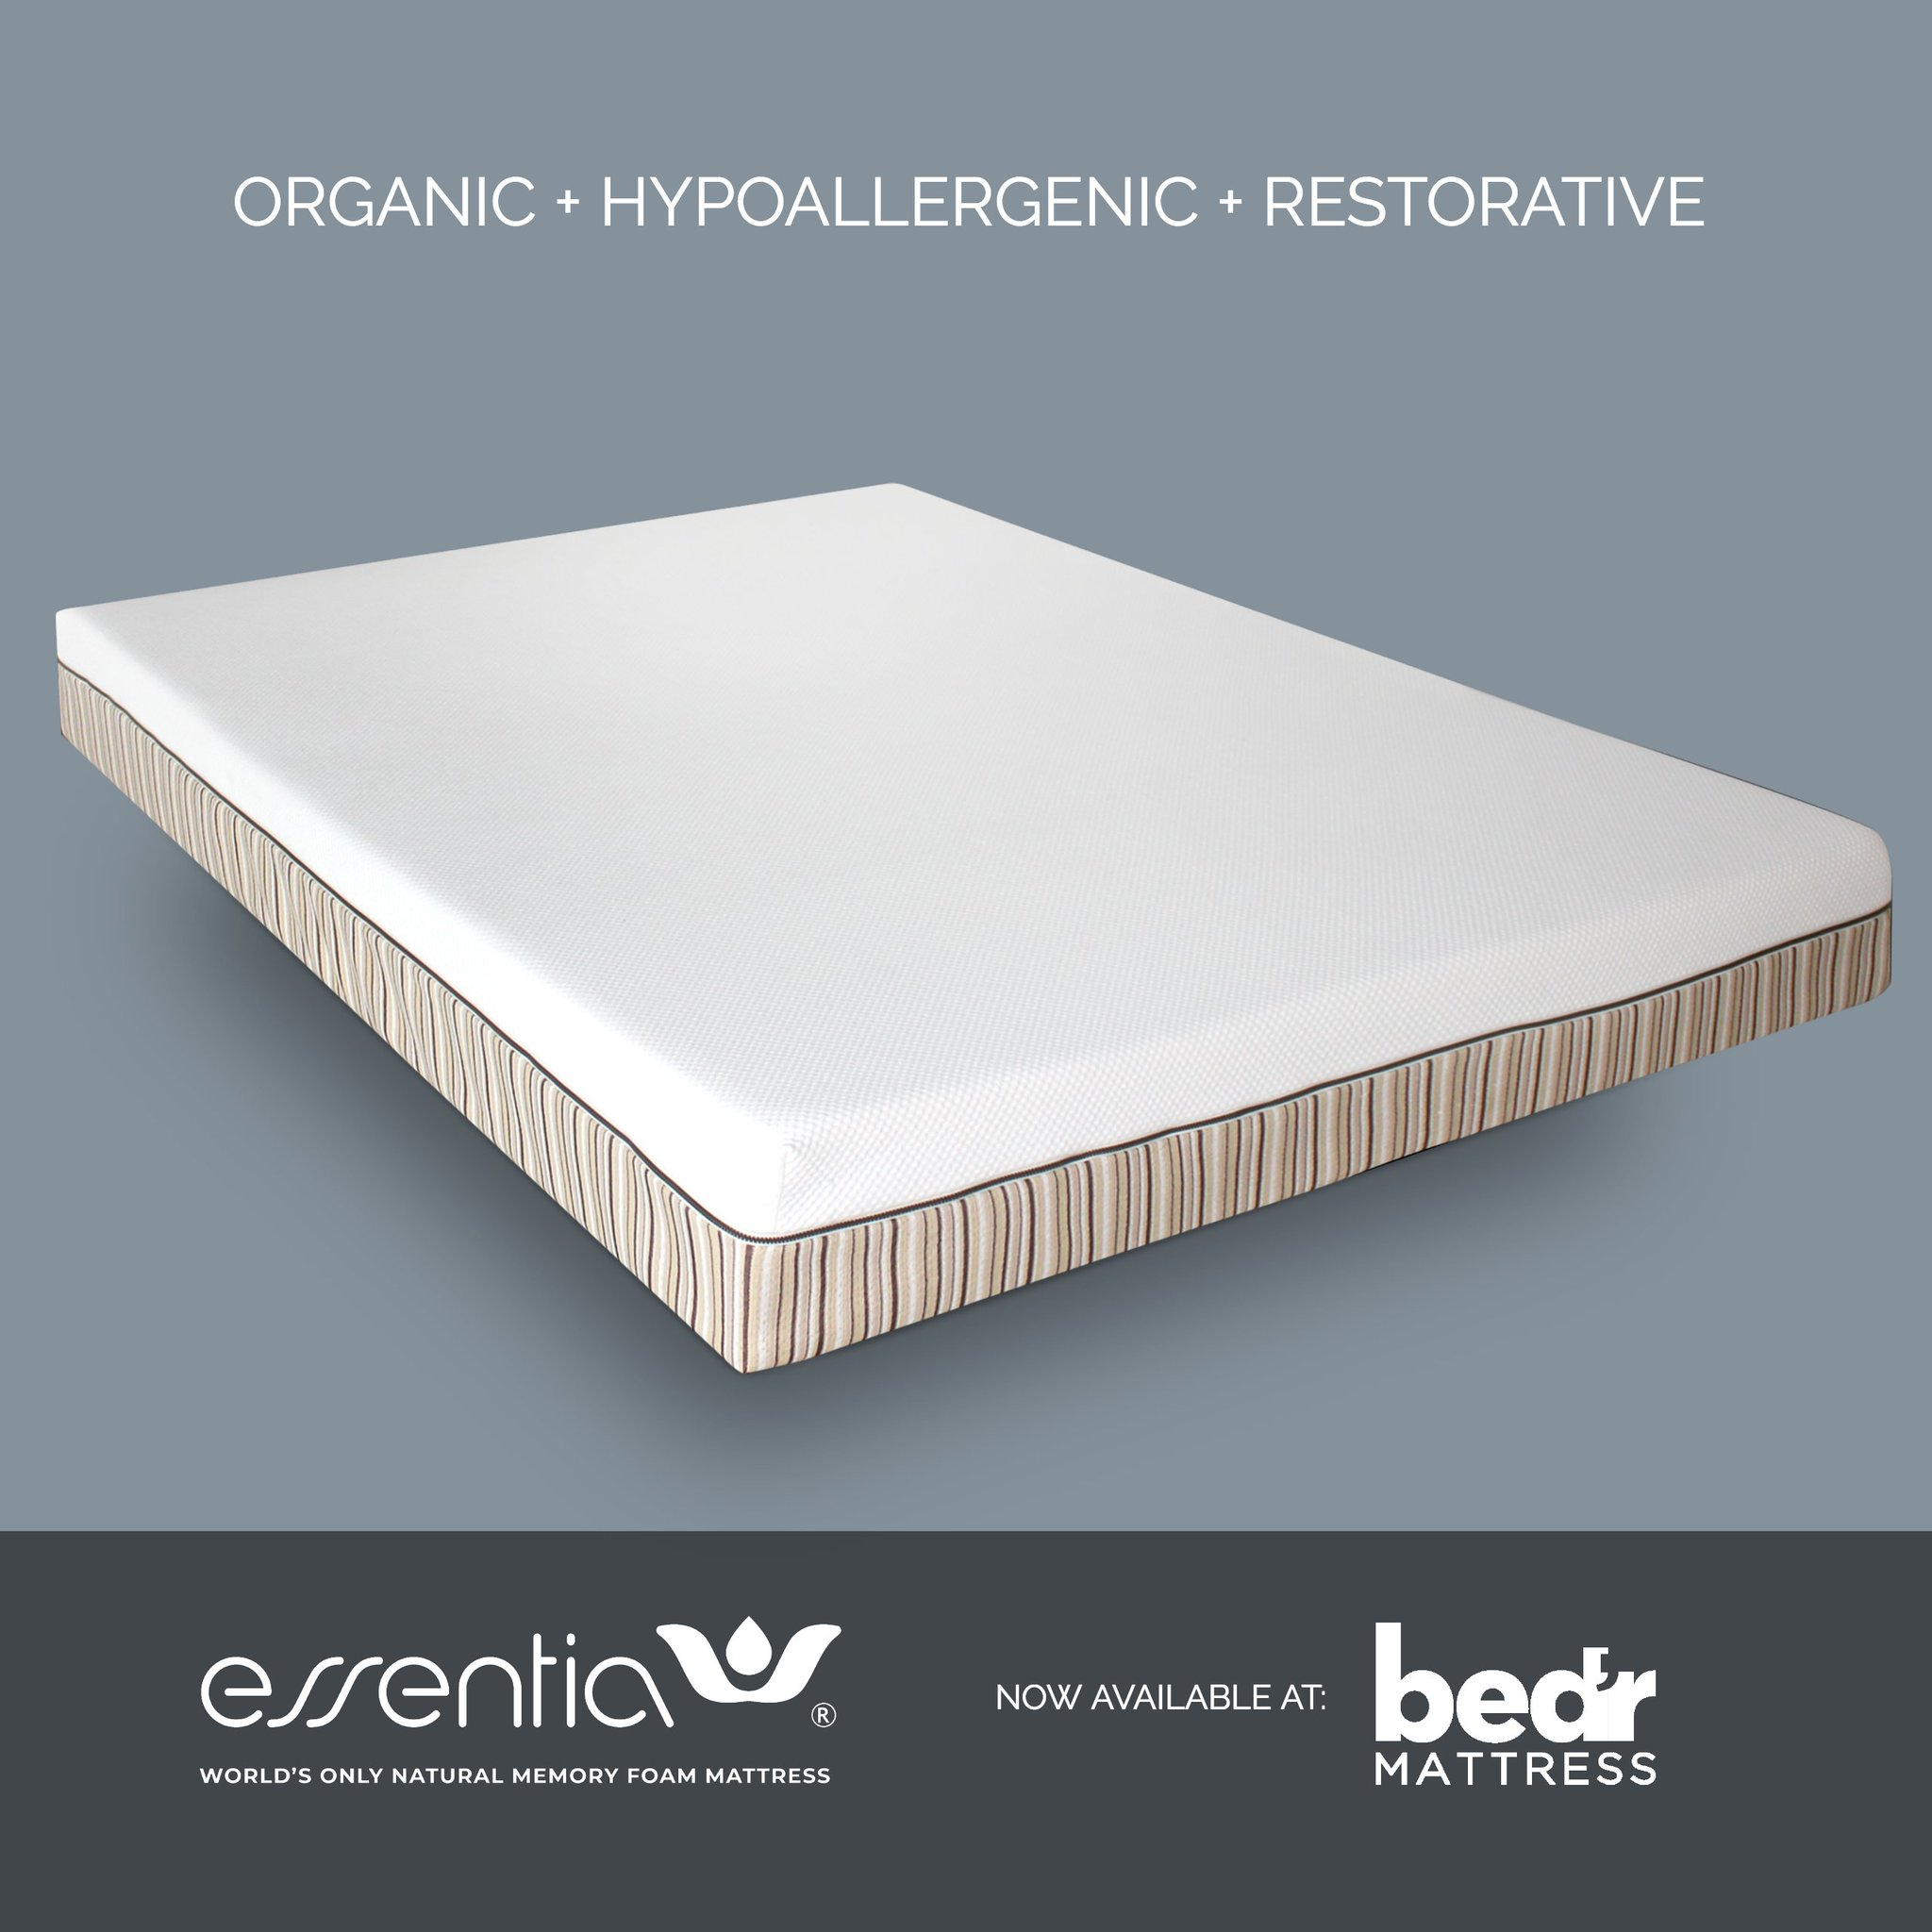 The Mattress Company Essentia Organic Mattresses Now Available At Bed R Mattress